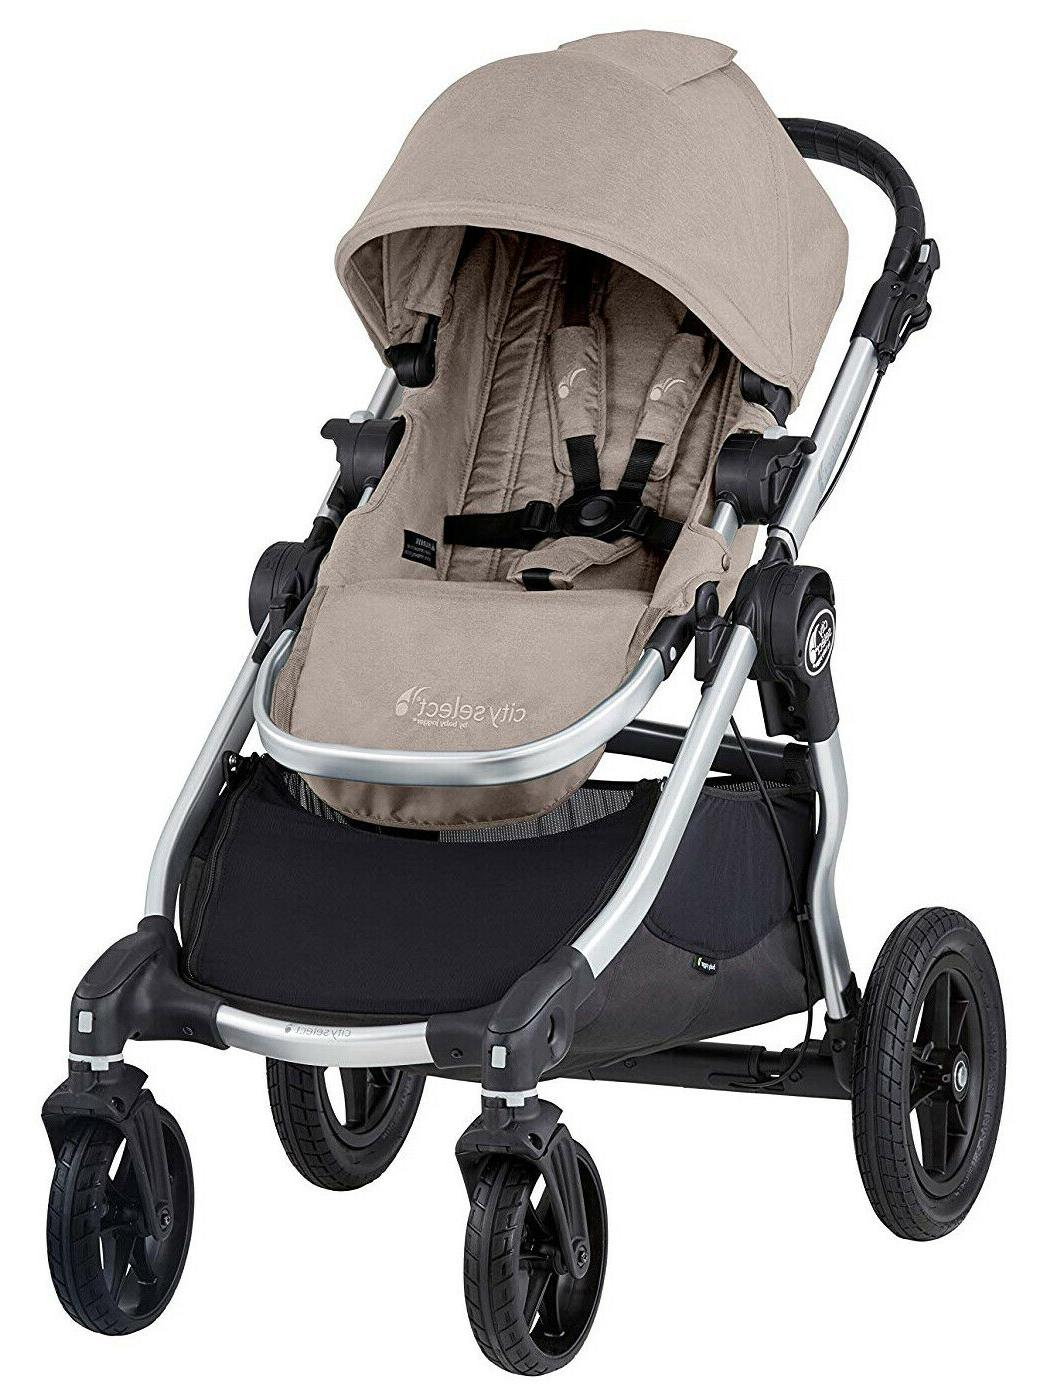 Baby Jogger Select Twin Double Paloma w Second Seat Bassinet 2019